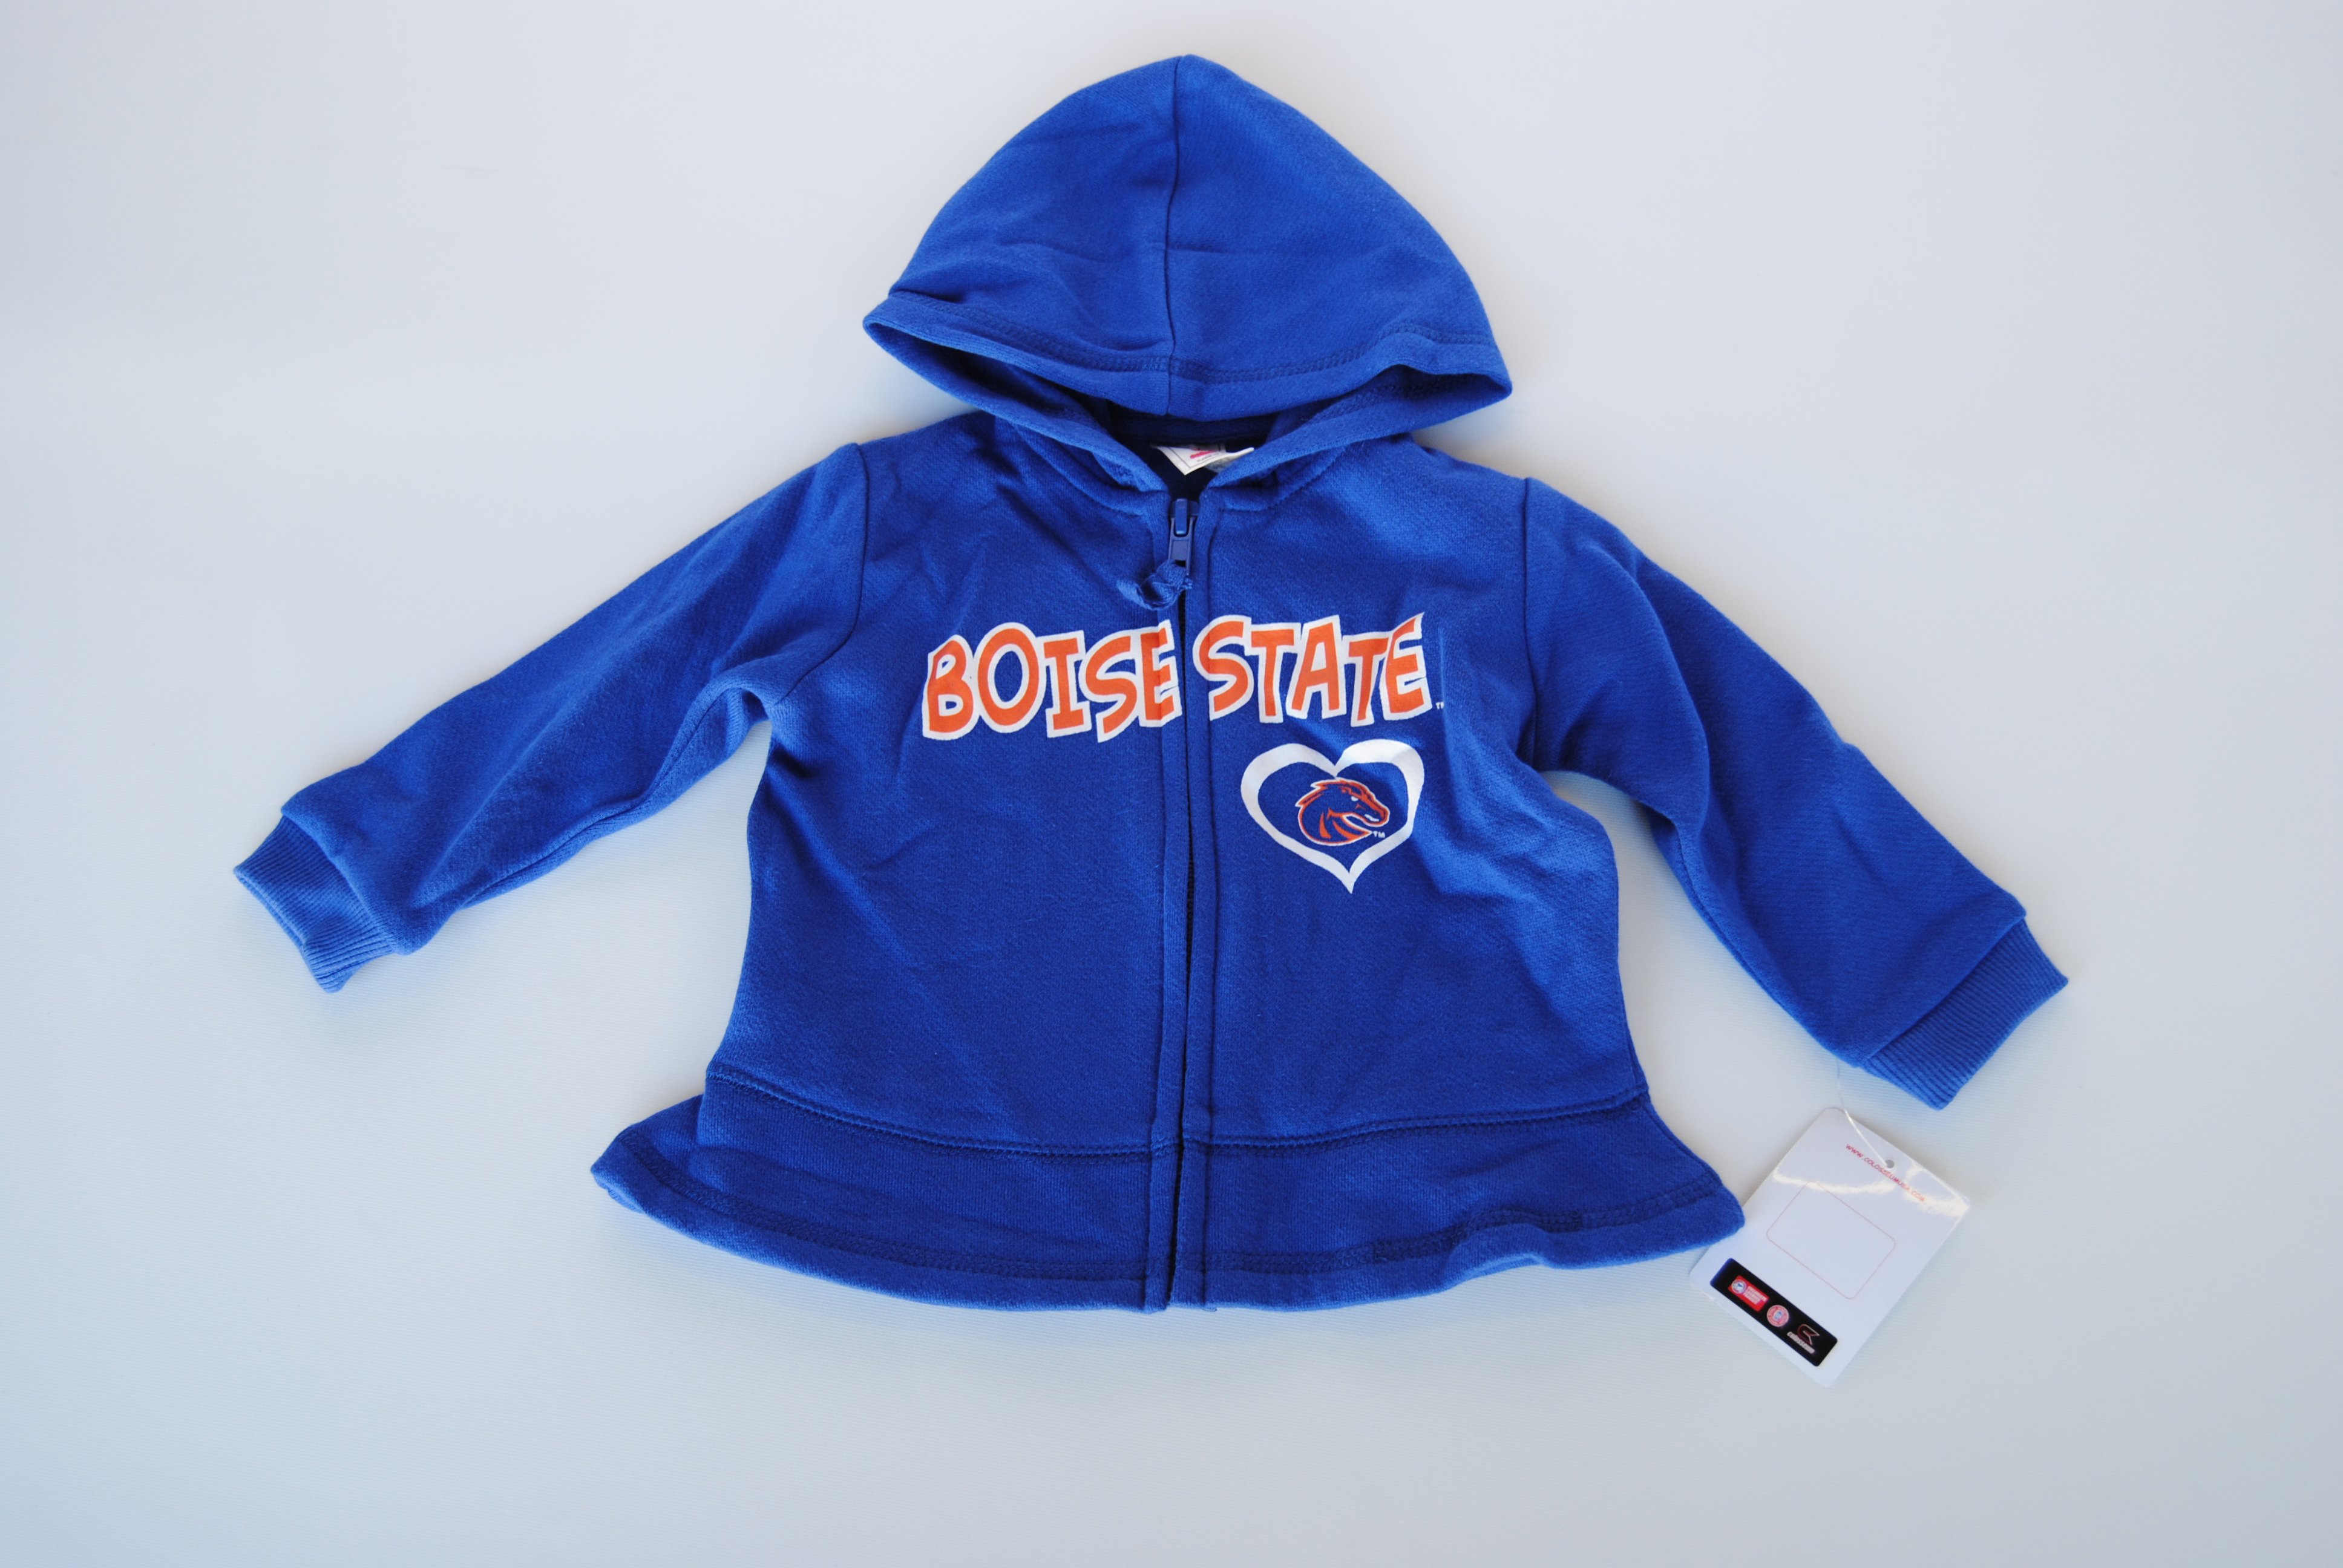 Colosseum Athletics Boise State Broncos Colosseum Blue Infant Zip Front Hooded Sweatshirt (6-12M) at Sears.com